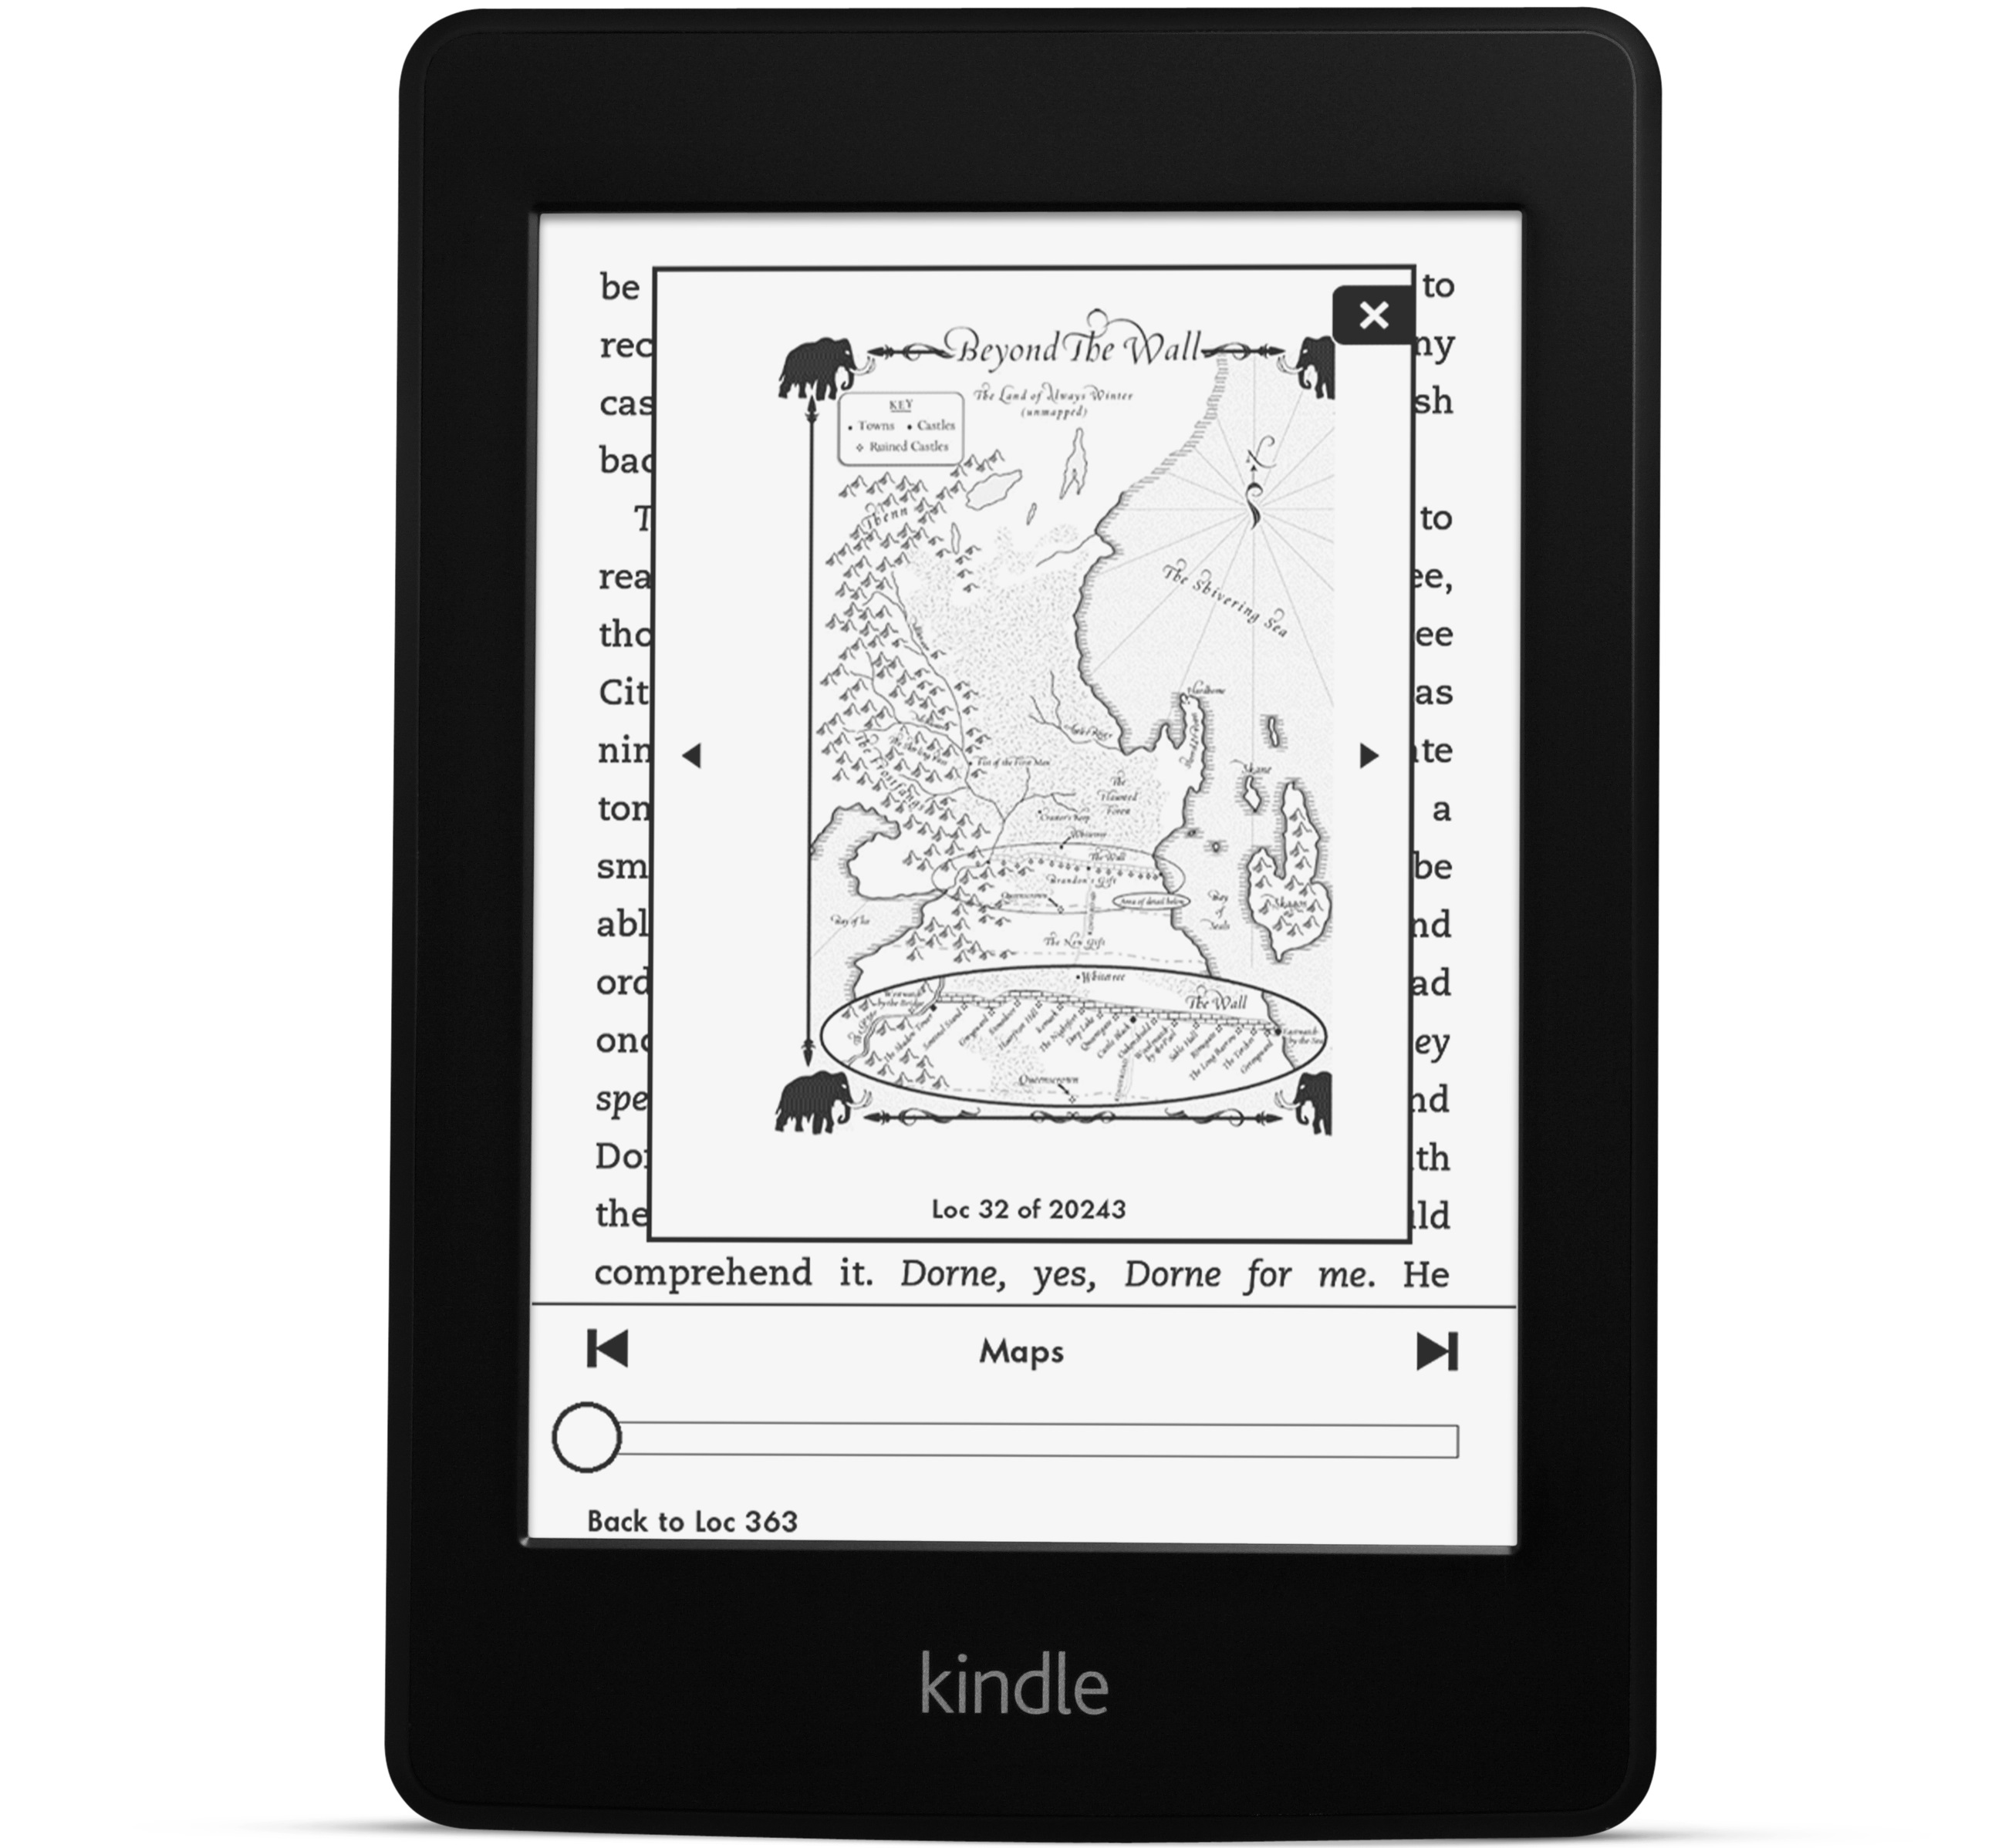 kindle cloud reader ダウンロード